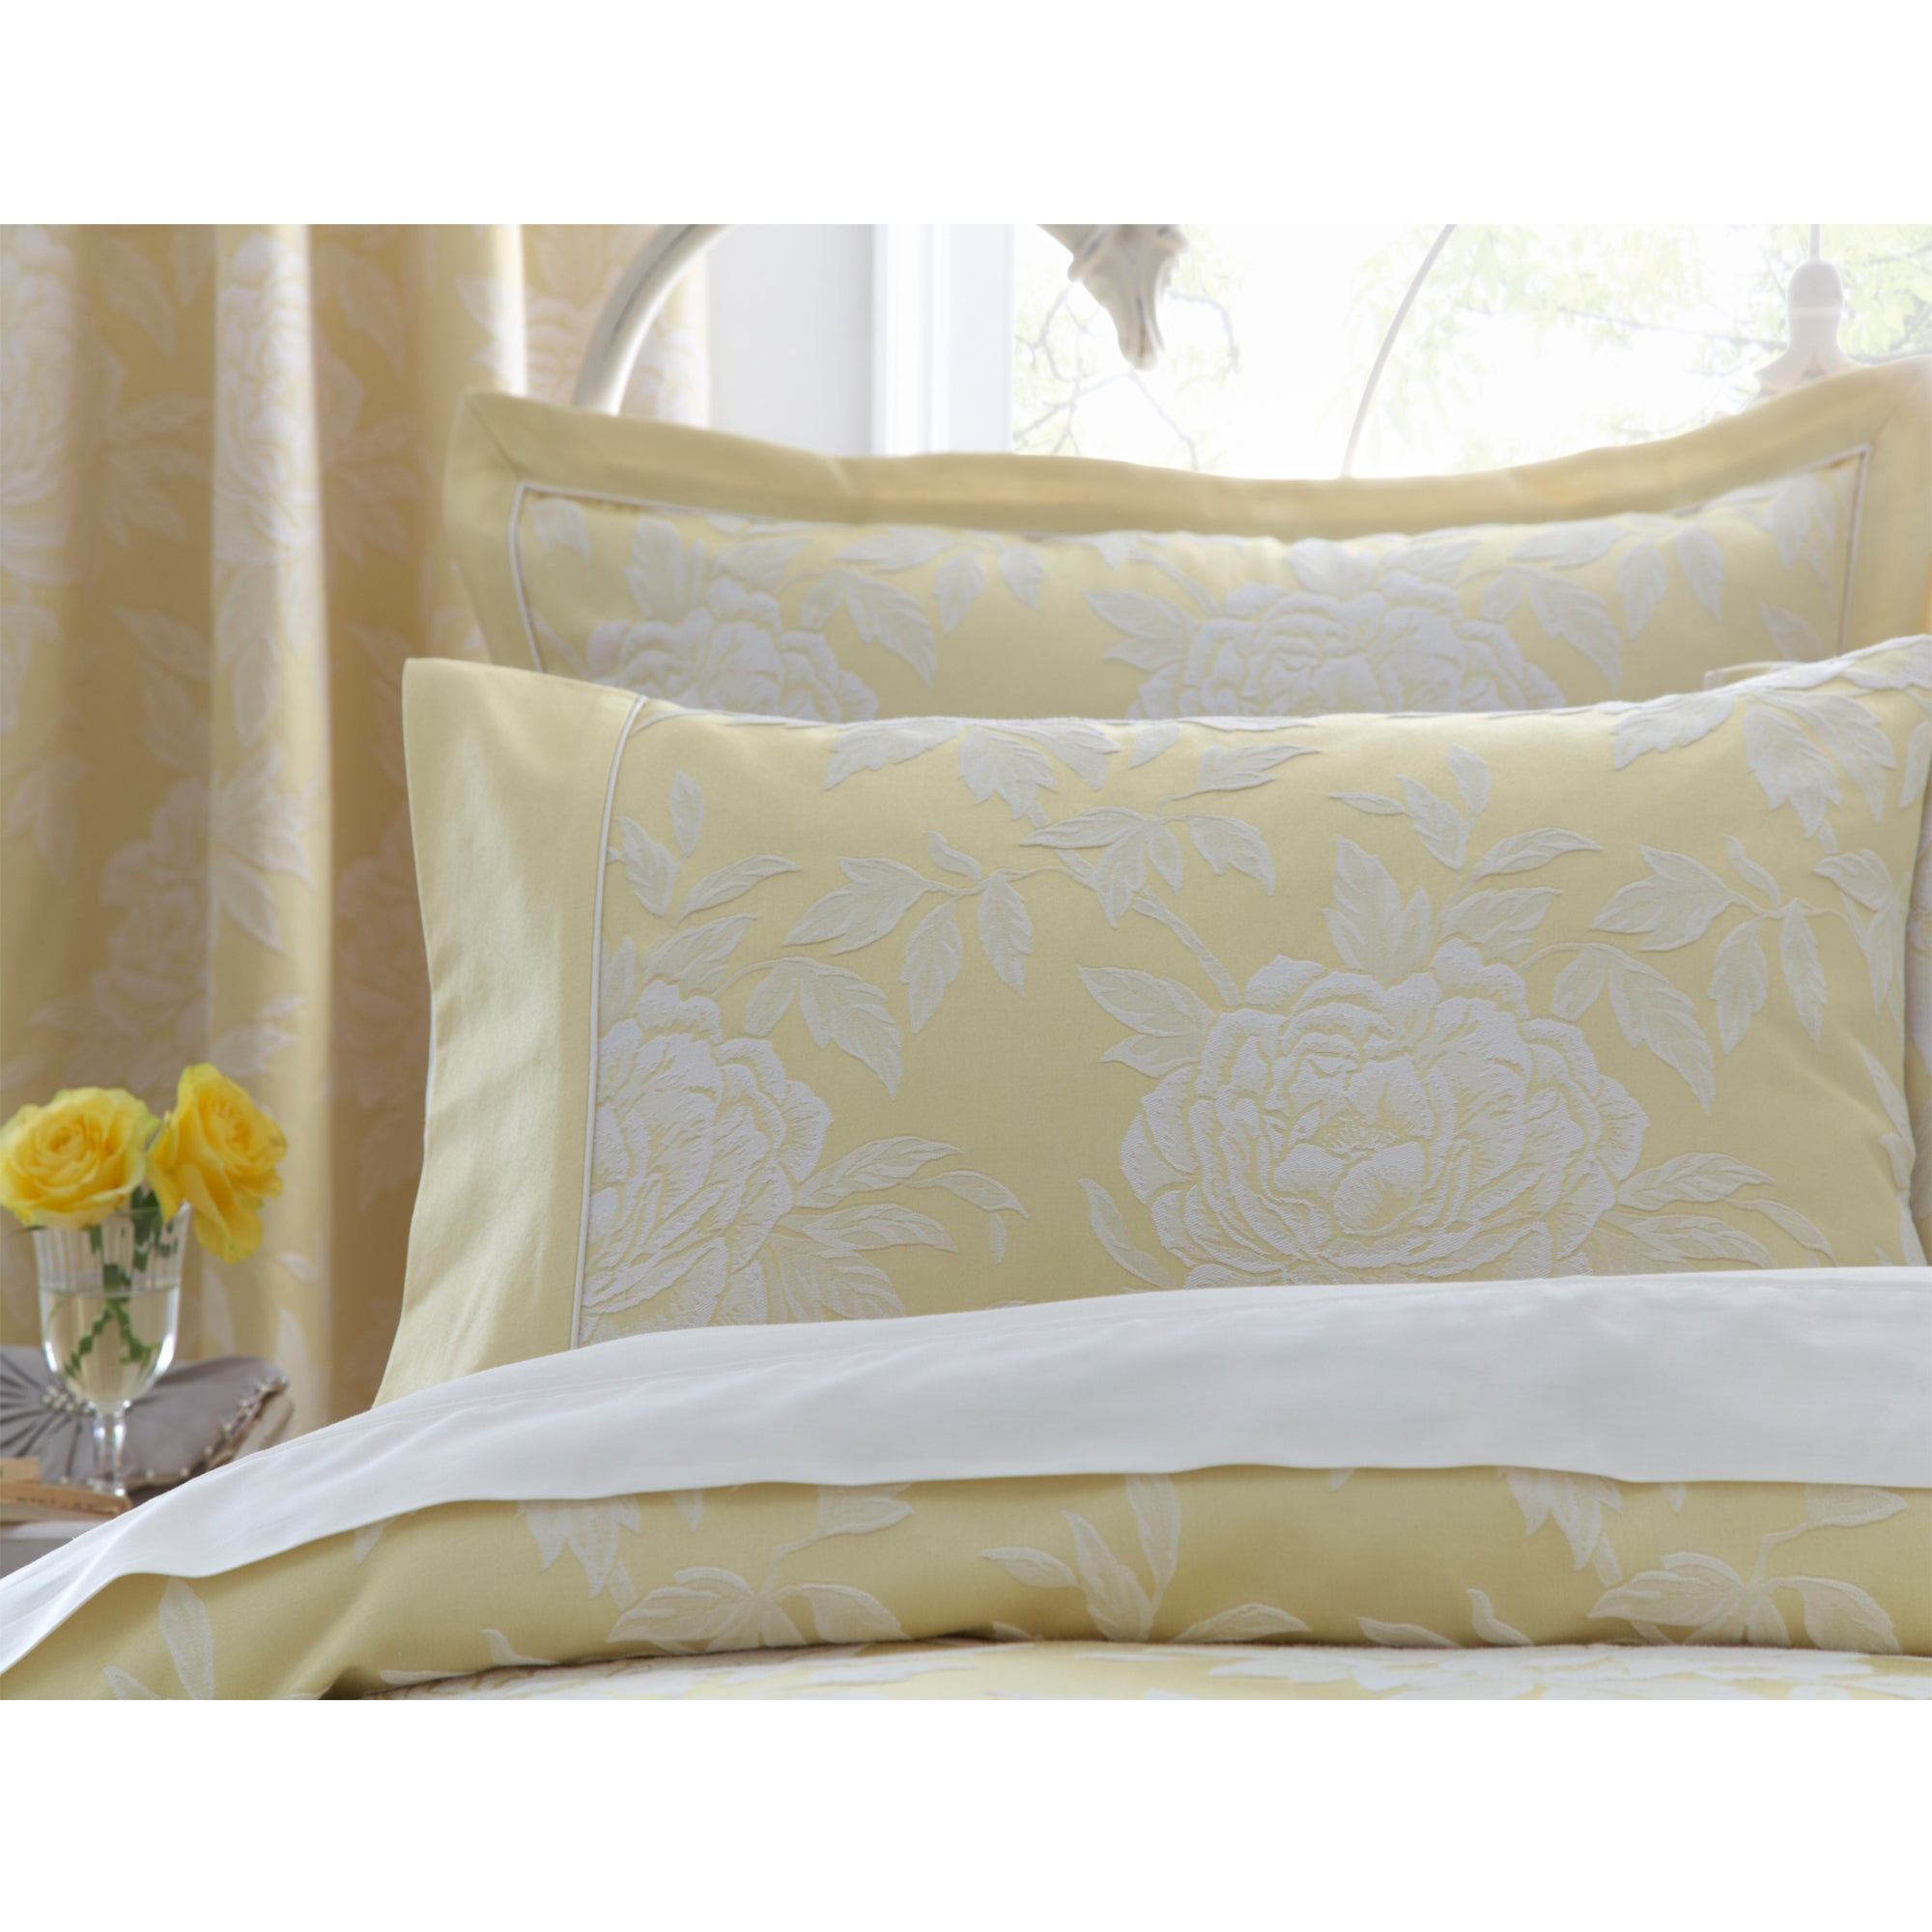 Dorma Lemon Chatsworth Collection Cuffed Pillowcase